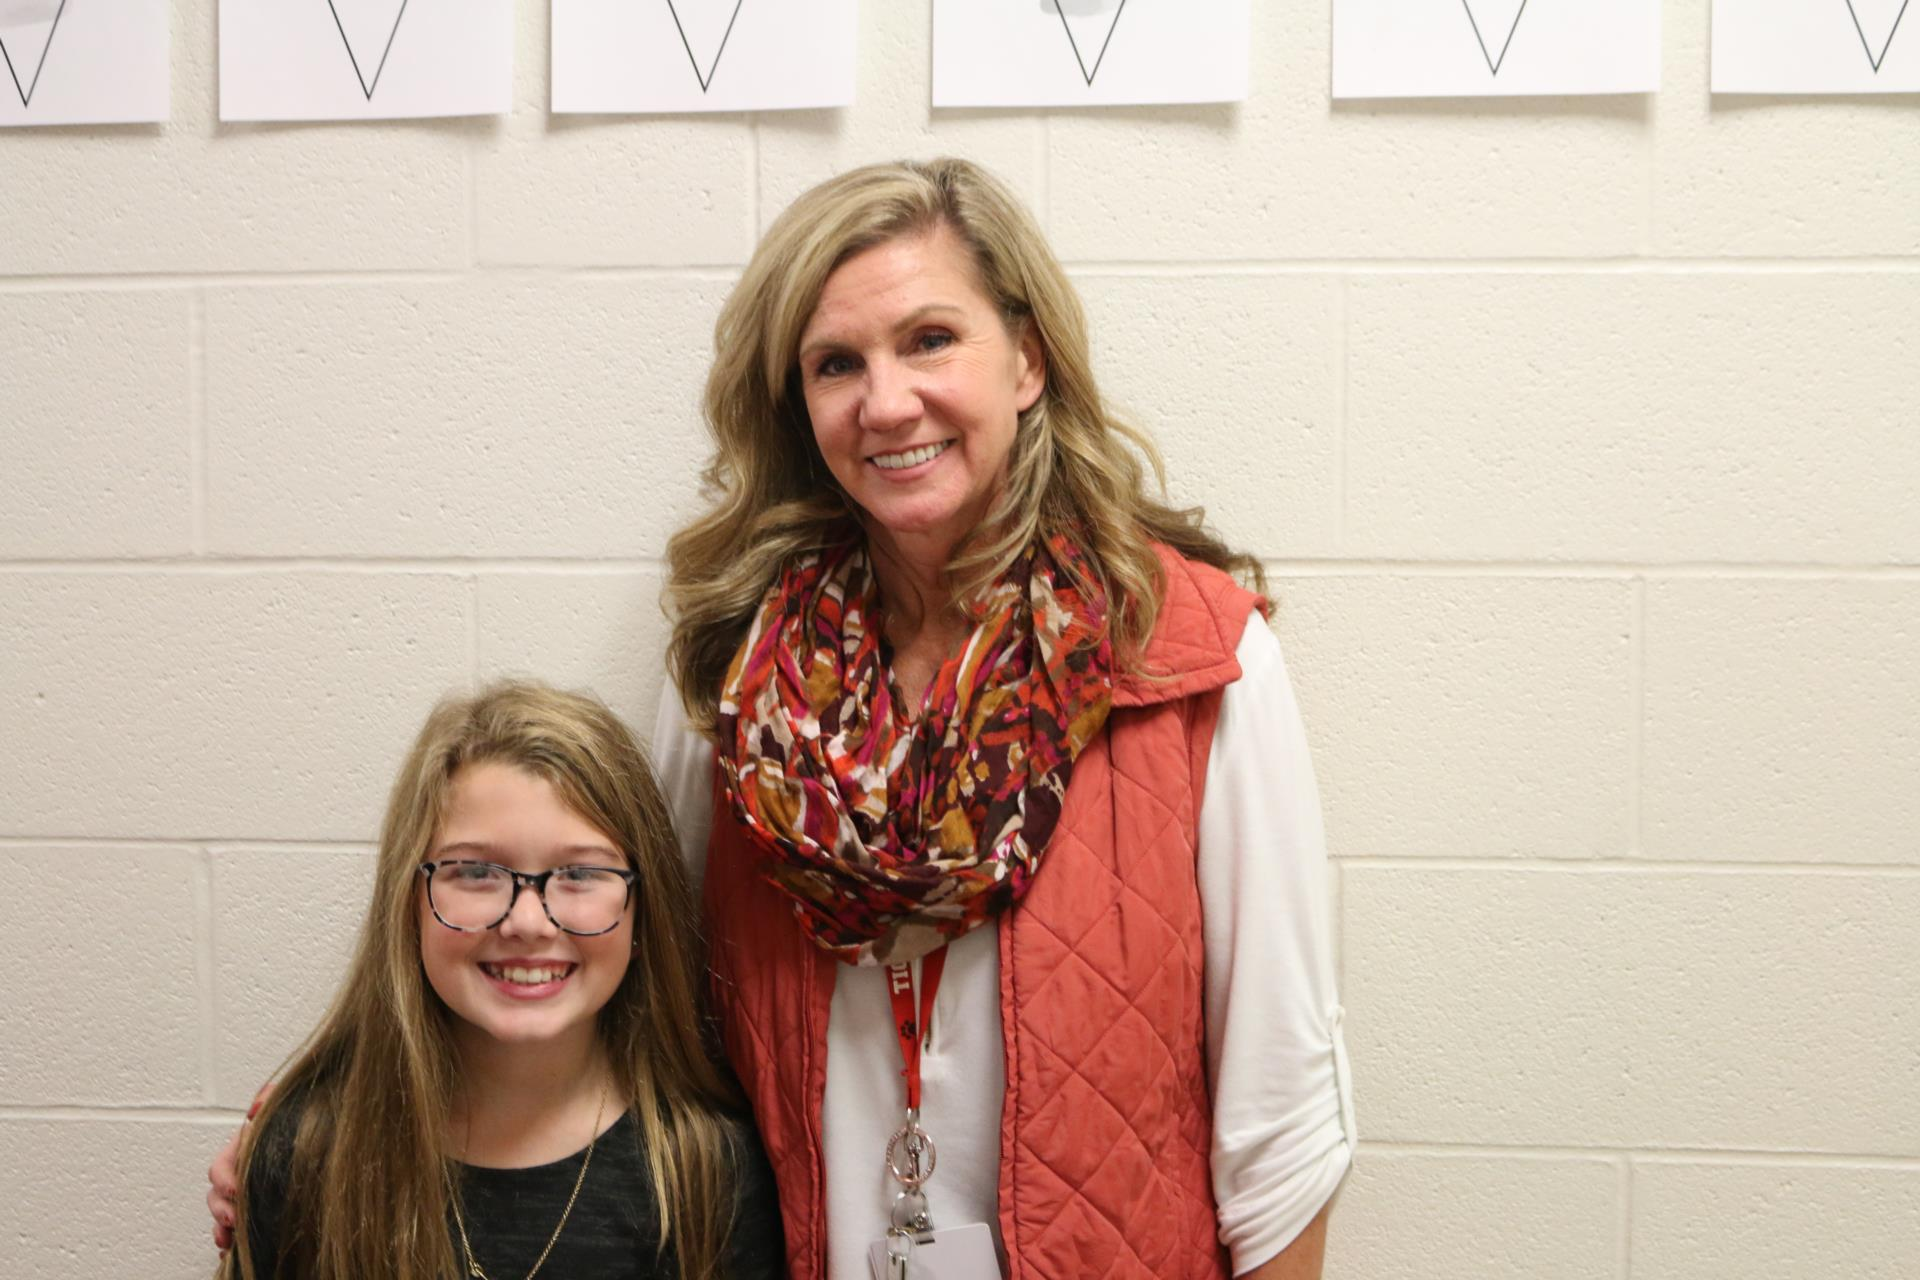 Mrs. Moats poses for a photo with winner Addy Powers